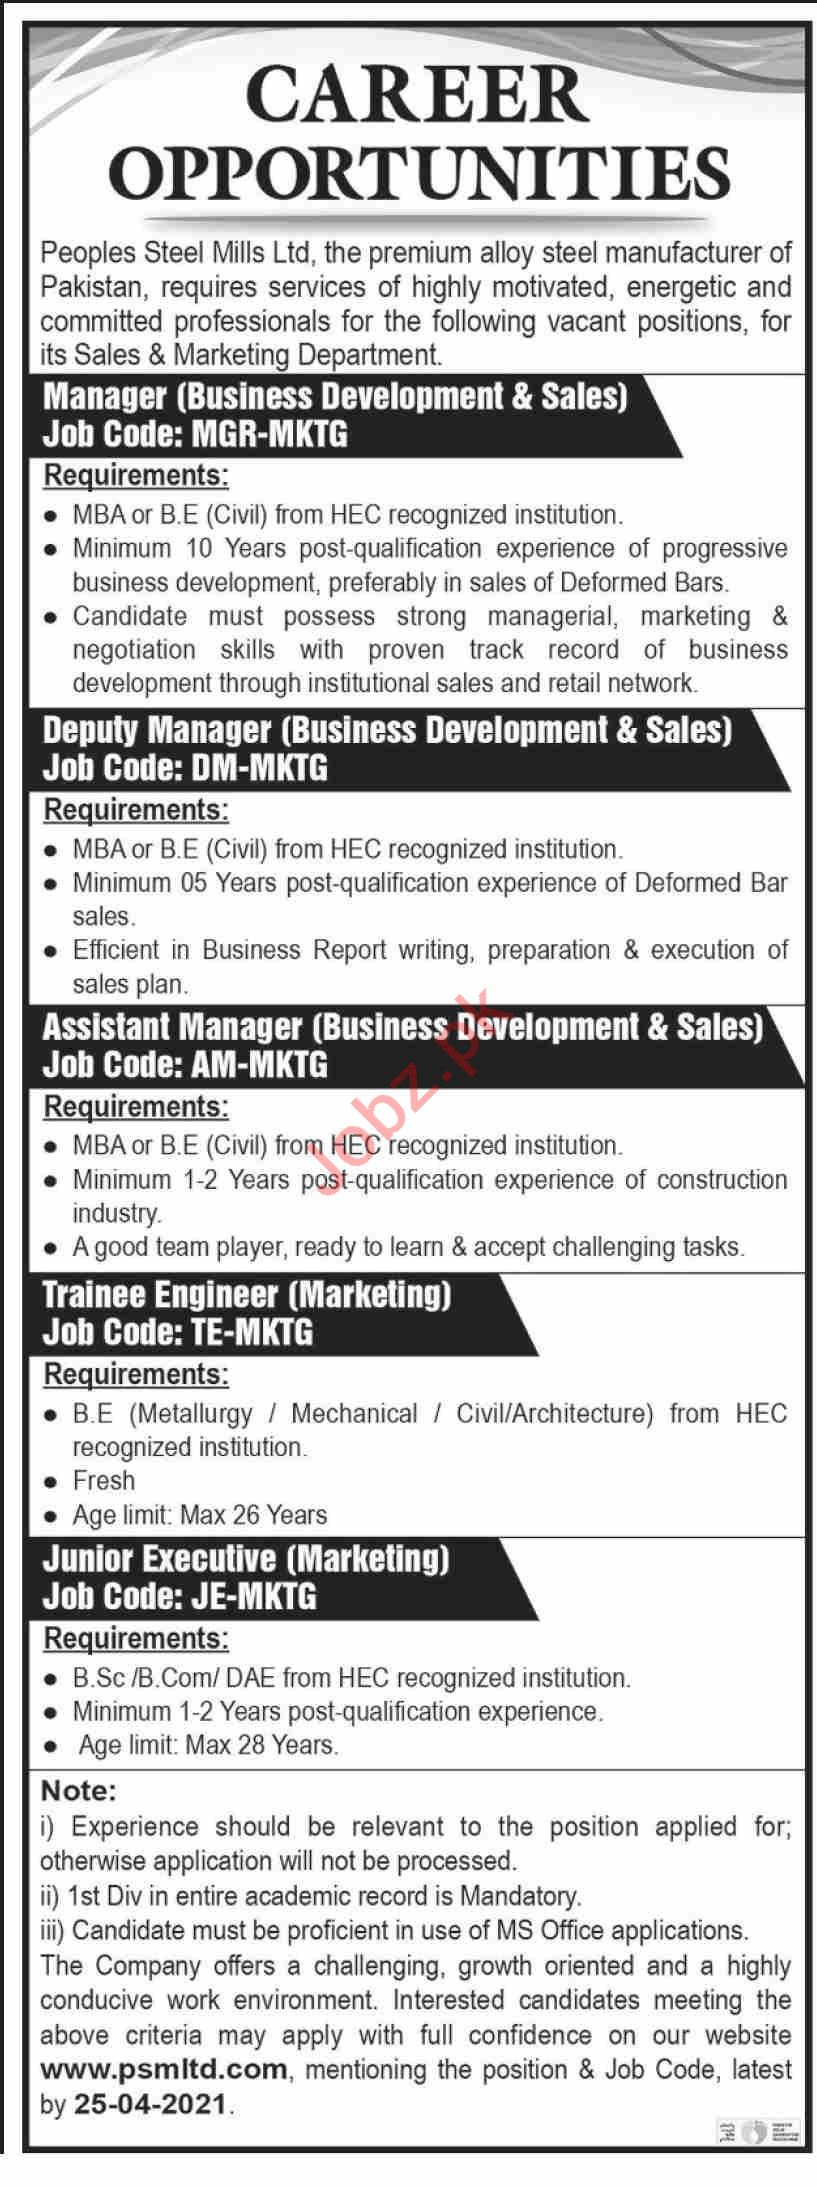 Peoples Steel Mills Limited PSML Karachi Jobs 2021 Manager